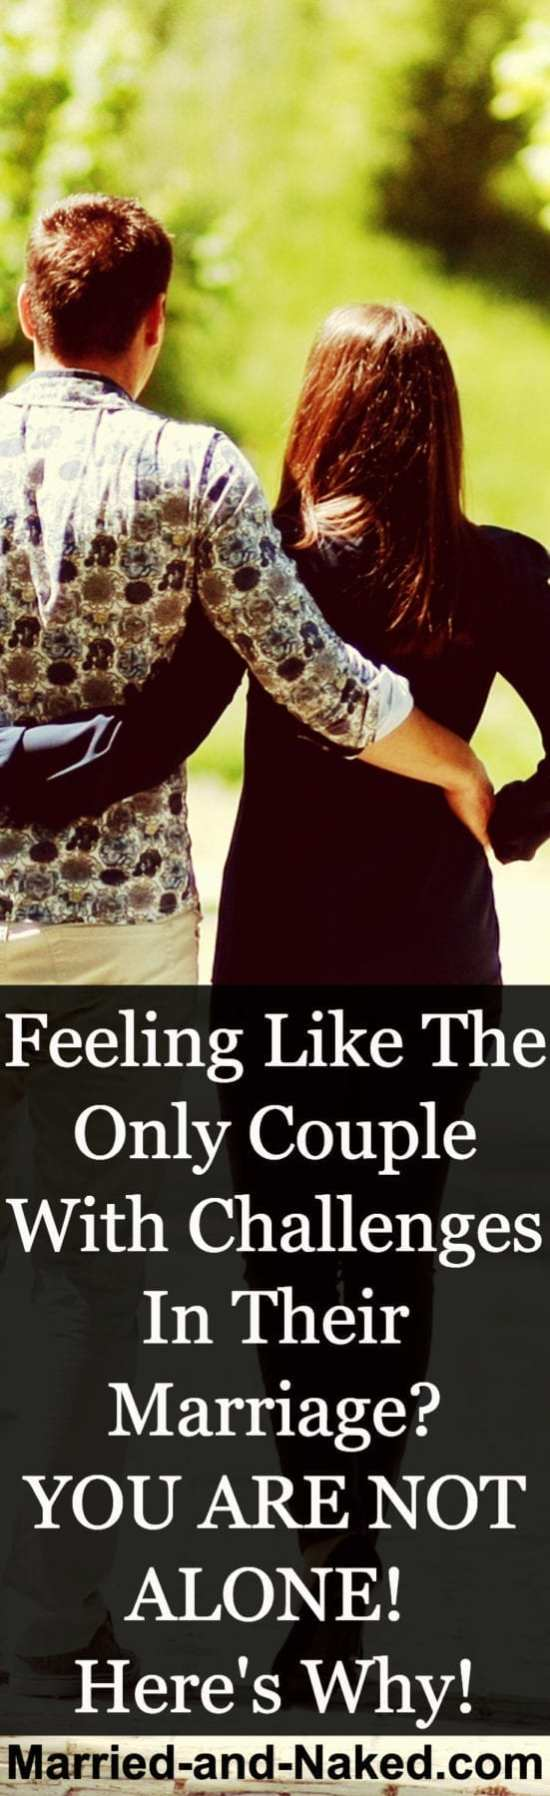 Feeling like the only couple with challenges in their marriage? You are not alone!